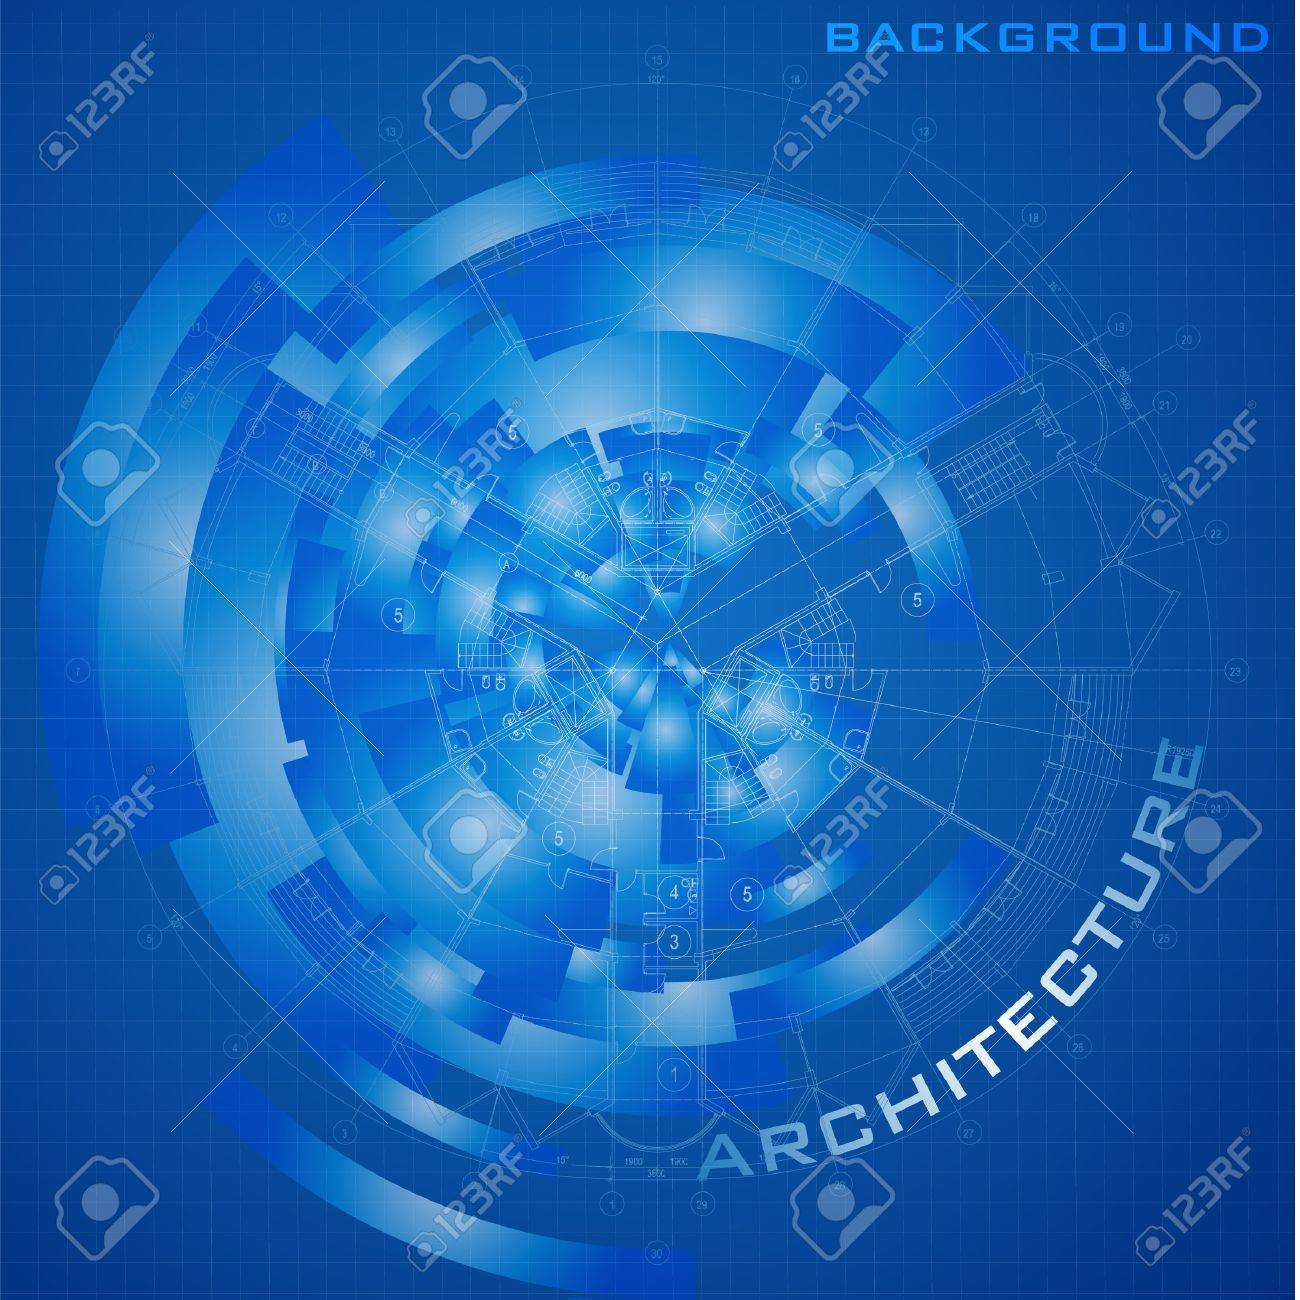 Abstract futuristic architectural design urban blueprint abstract futuristic architectural design urban blueprint architectural background part of architectural project architectural malvernweather Images